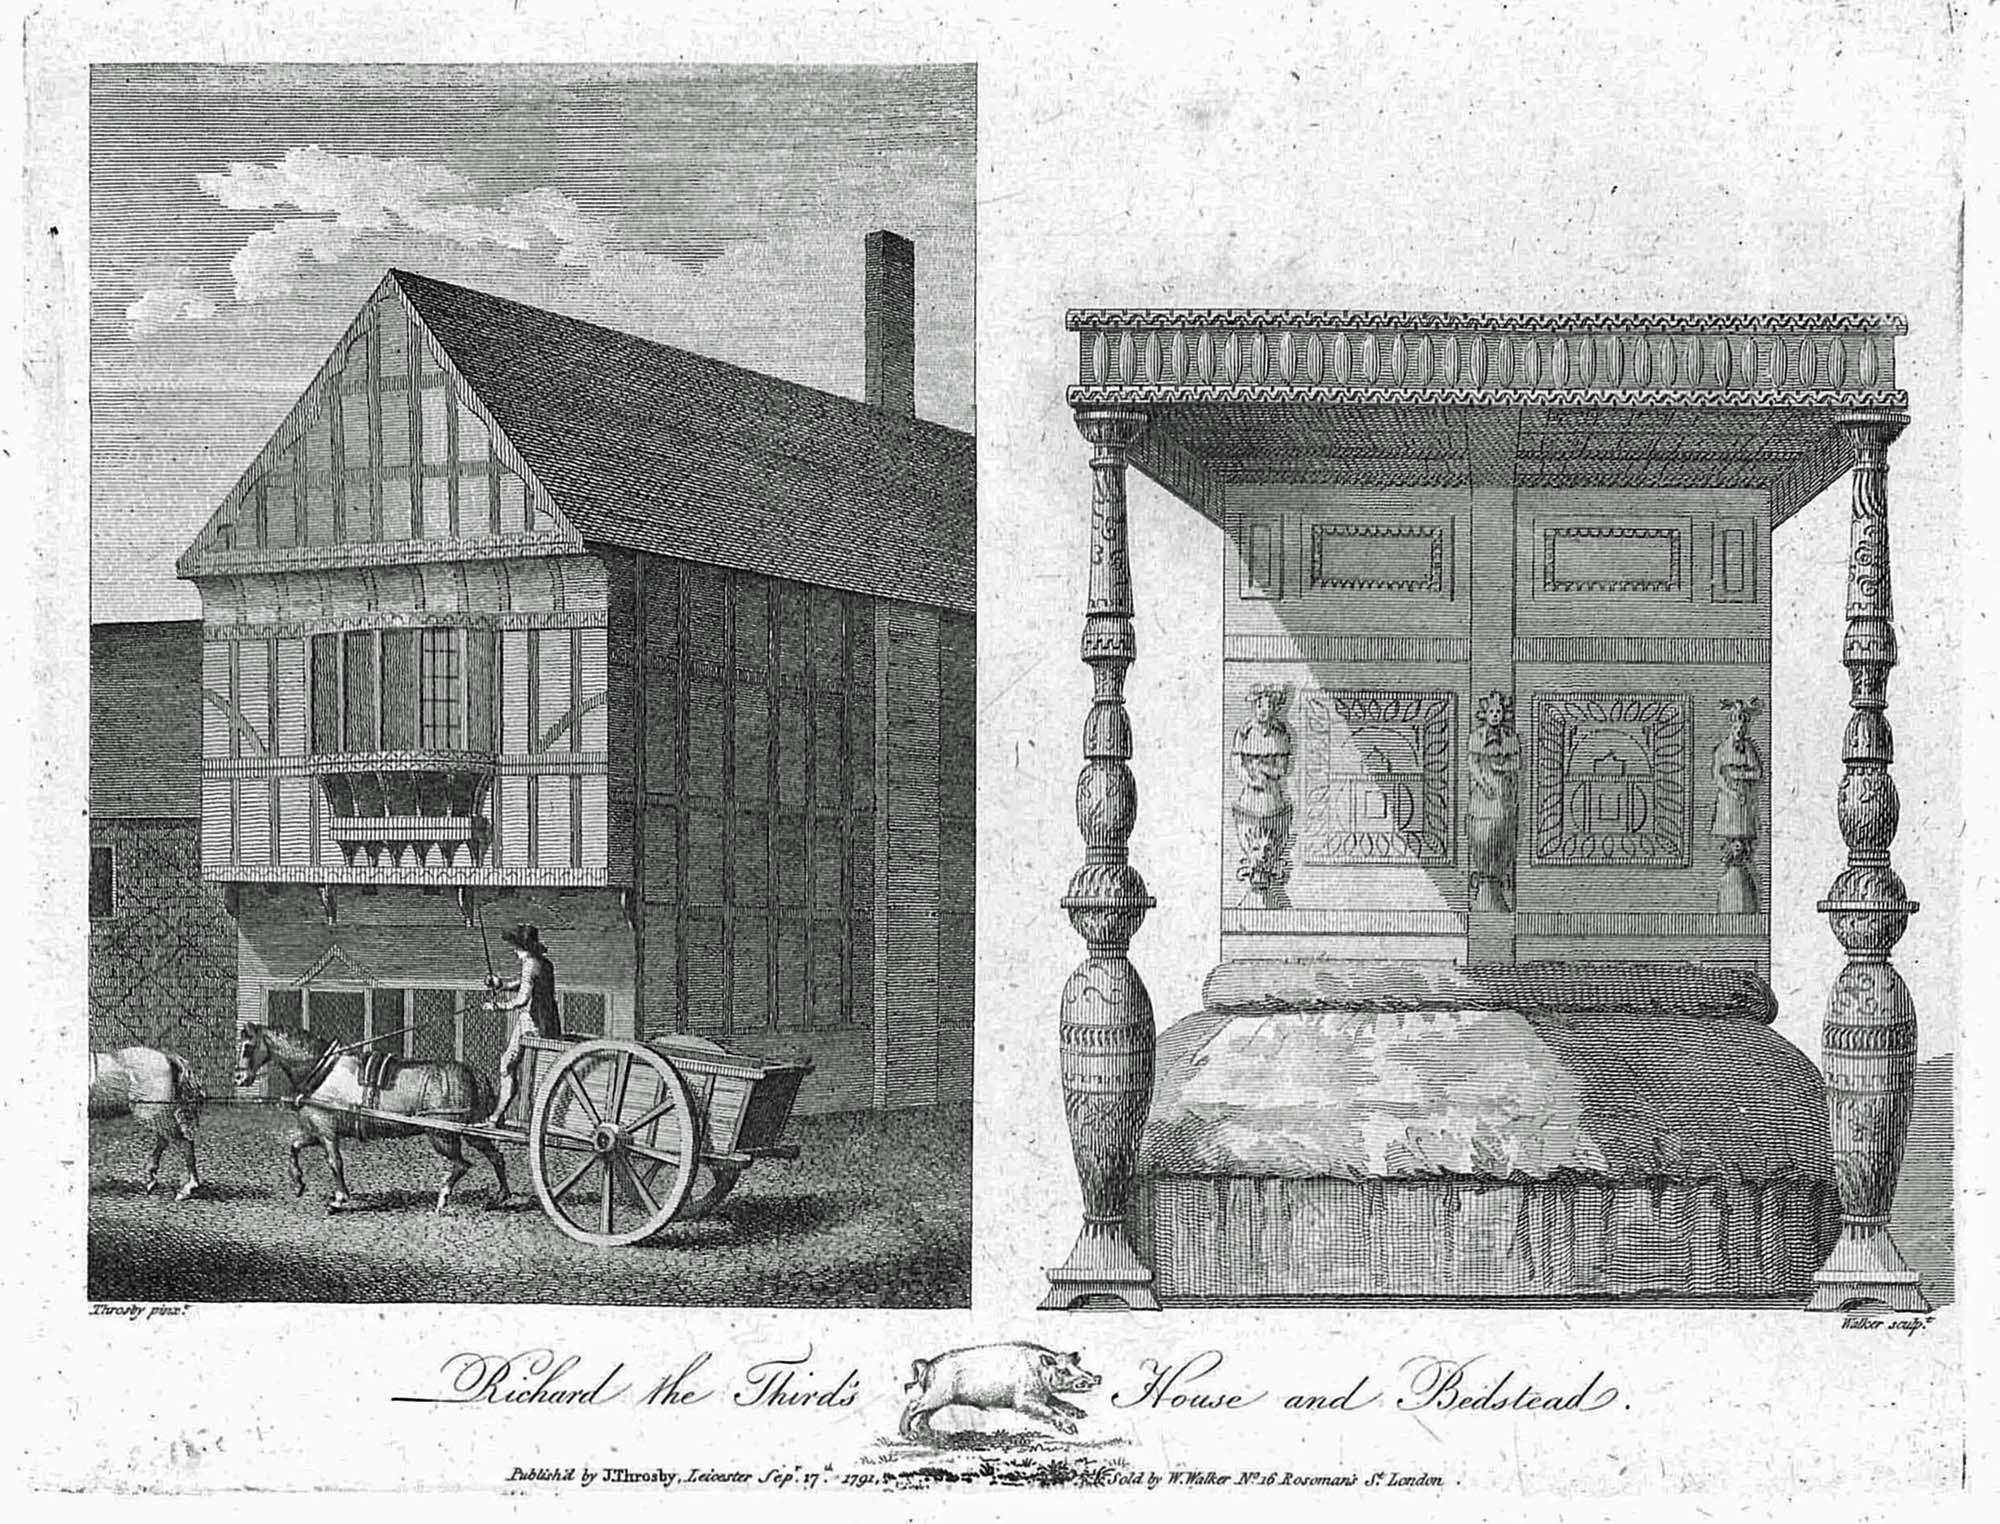 An 18th-century engraving of 'Richard the Third's House and Bedstead' by Leicester antiquary John Throsby - University of Leicester Library Special Collections